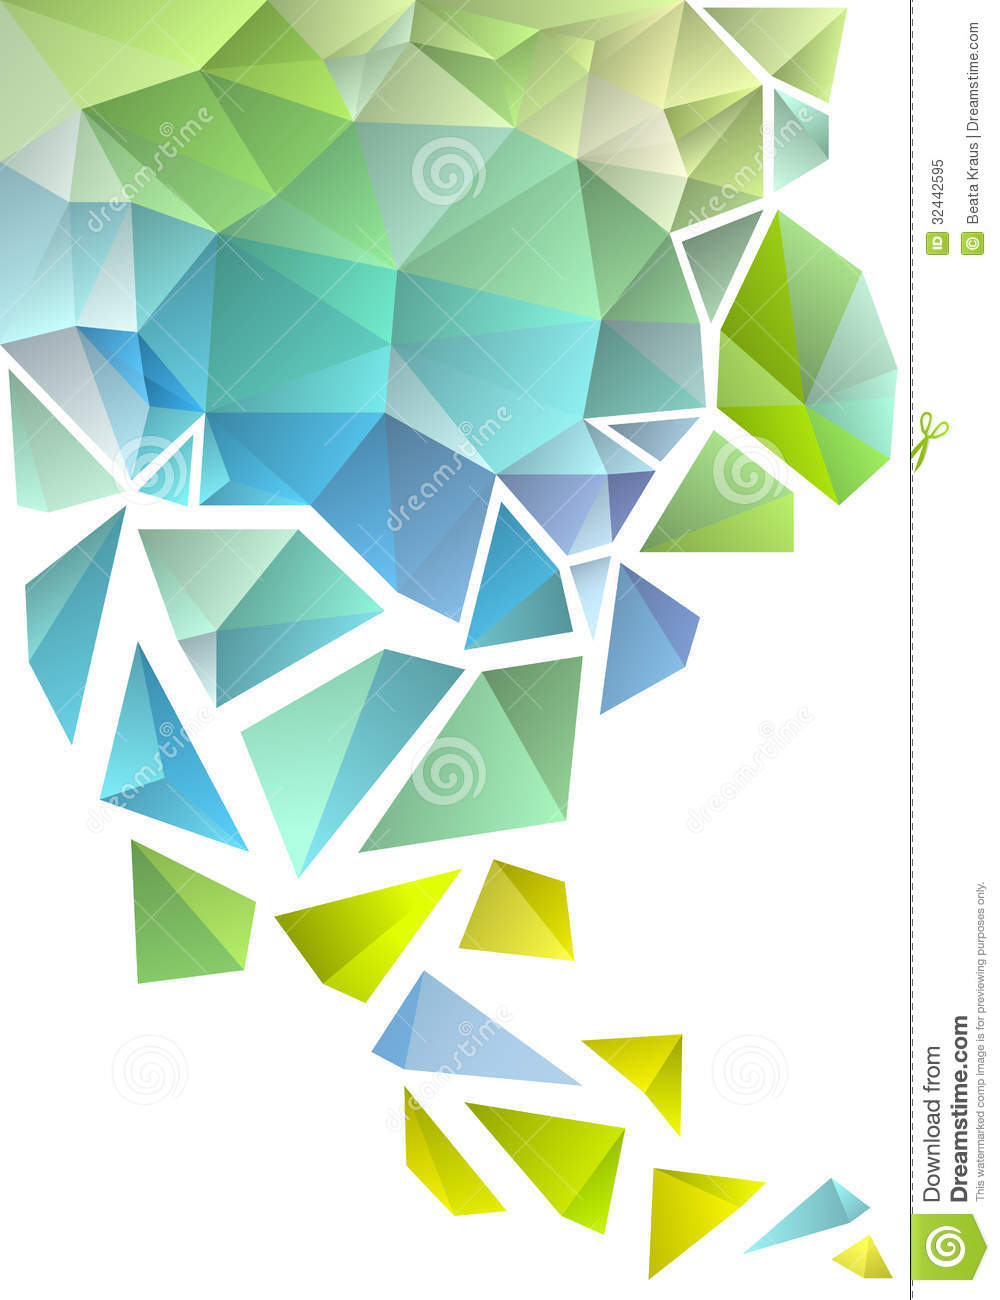 Triangle Objects Clipart